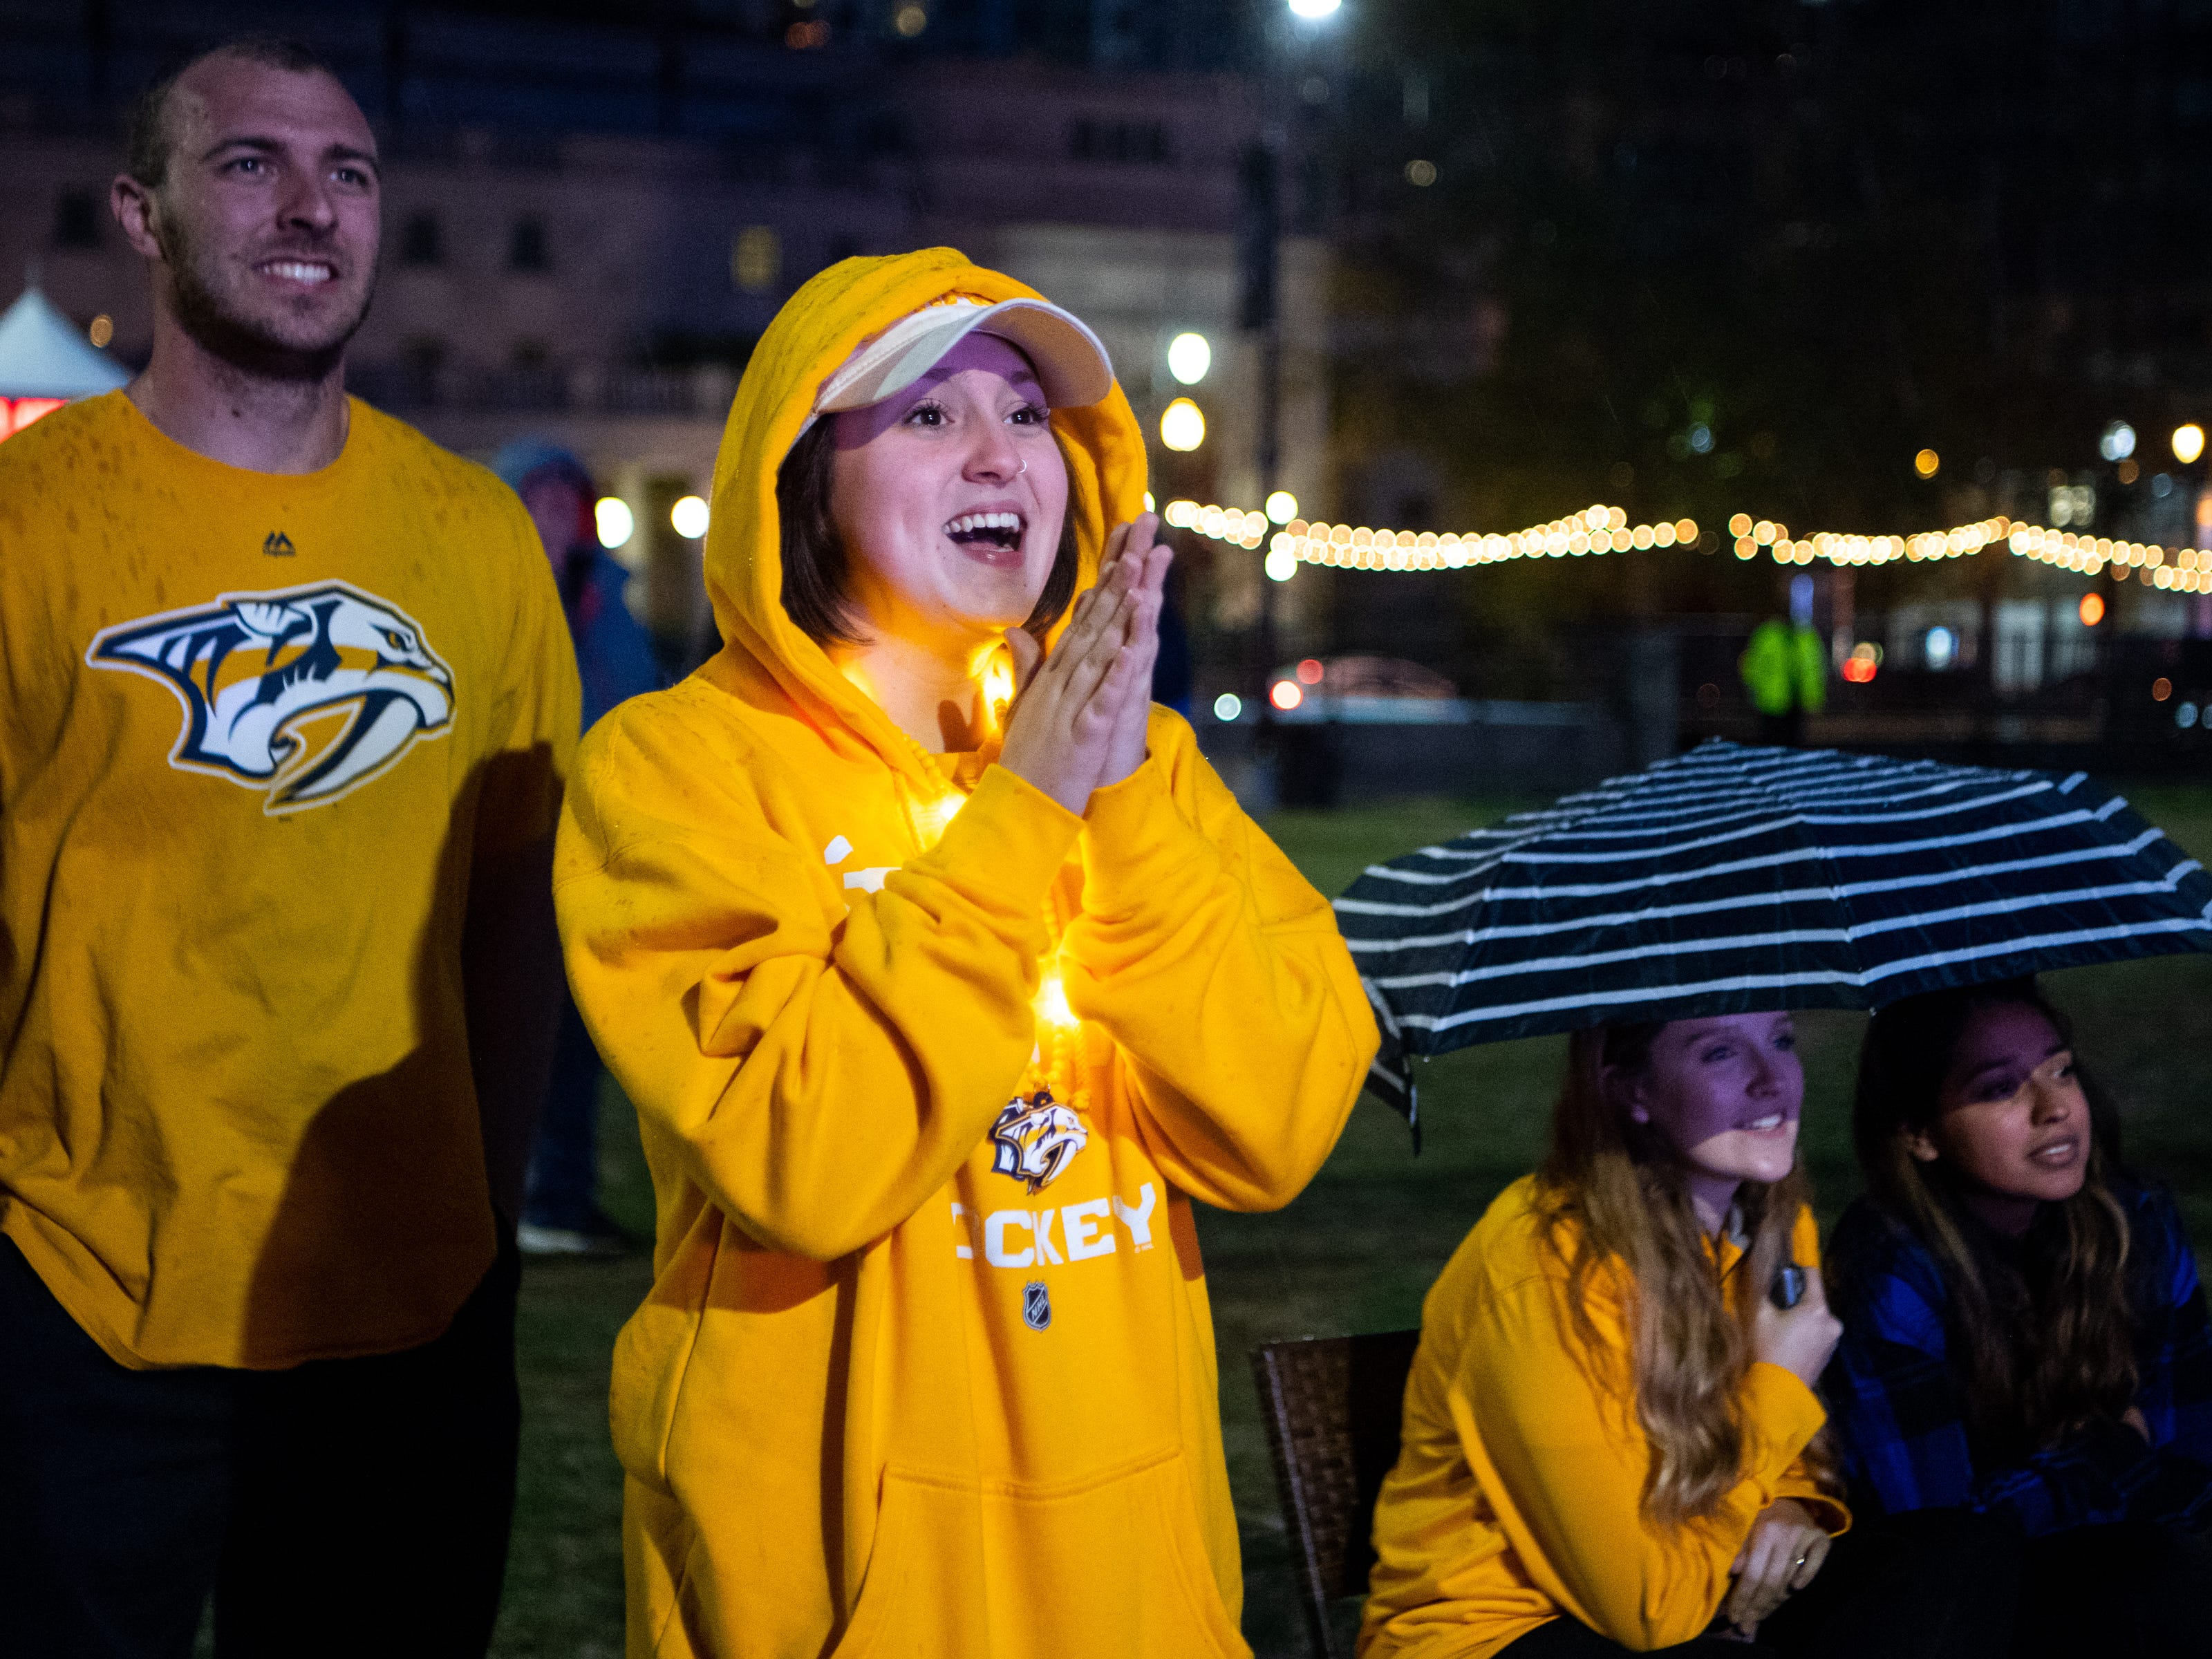 Angie Manning cheers during the third period of the Nashville Predators game against the Dallas Stars at Preds Party in the Park at Walk of Fame Park Saturday, April 13, 2019, in Nashville, Tenn.